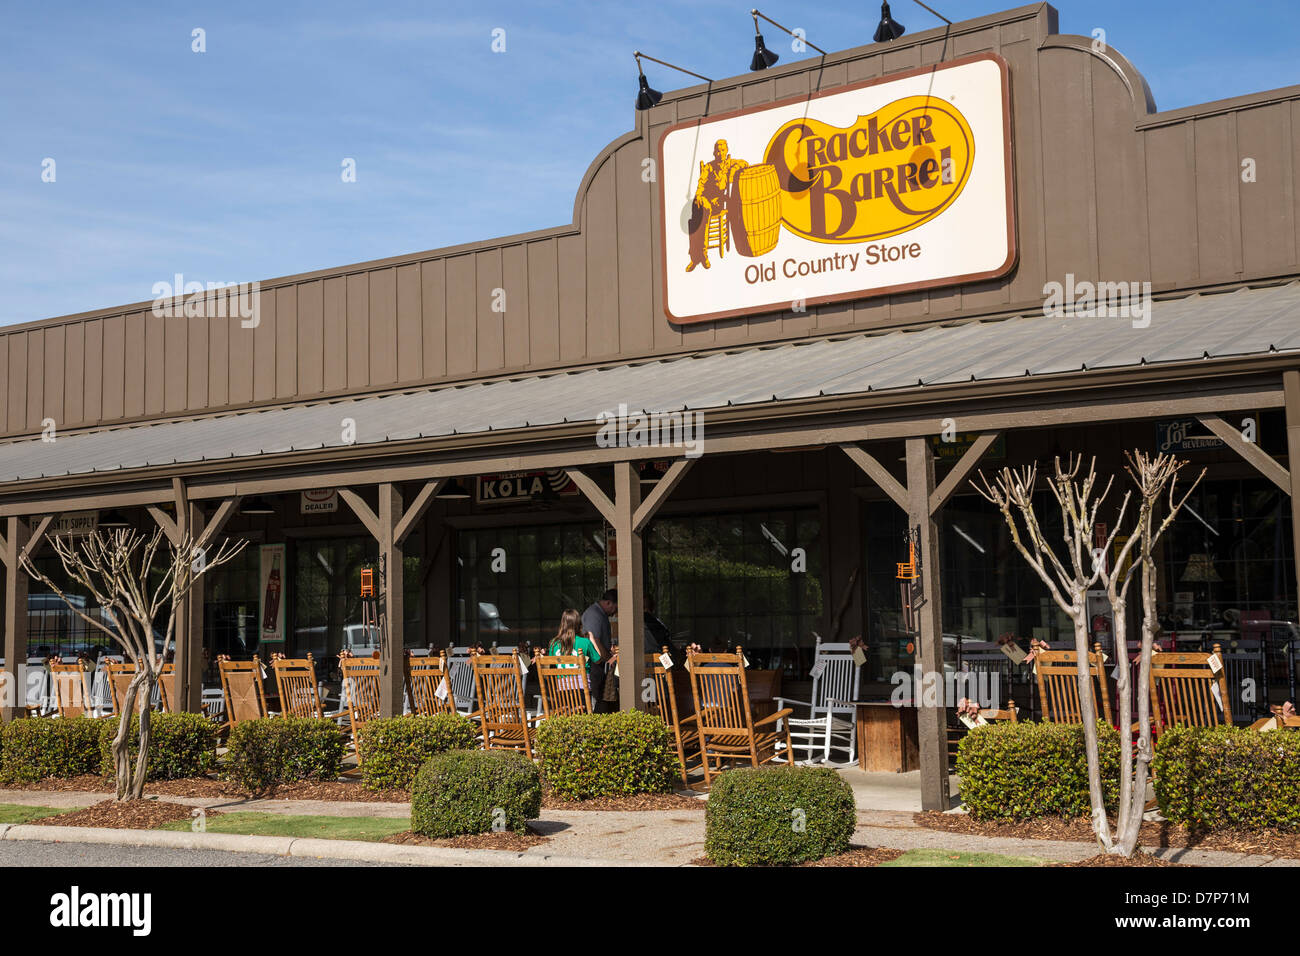 Cracker Barrel Restaurant Food